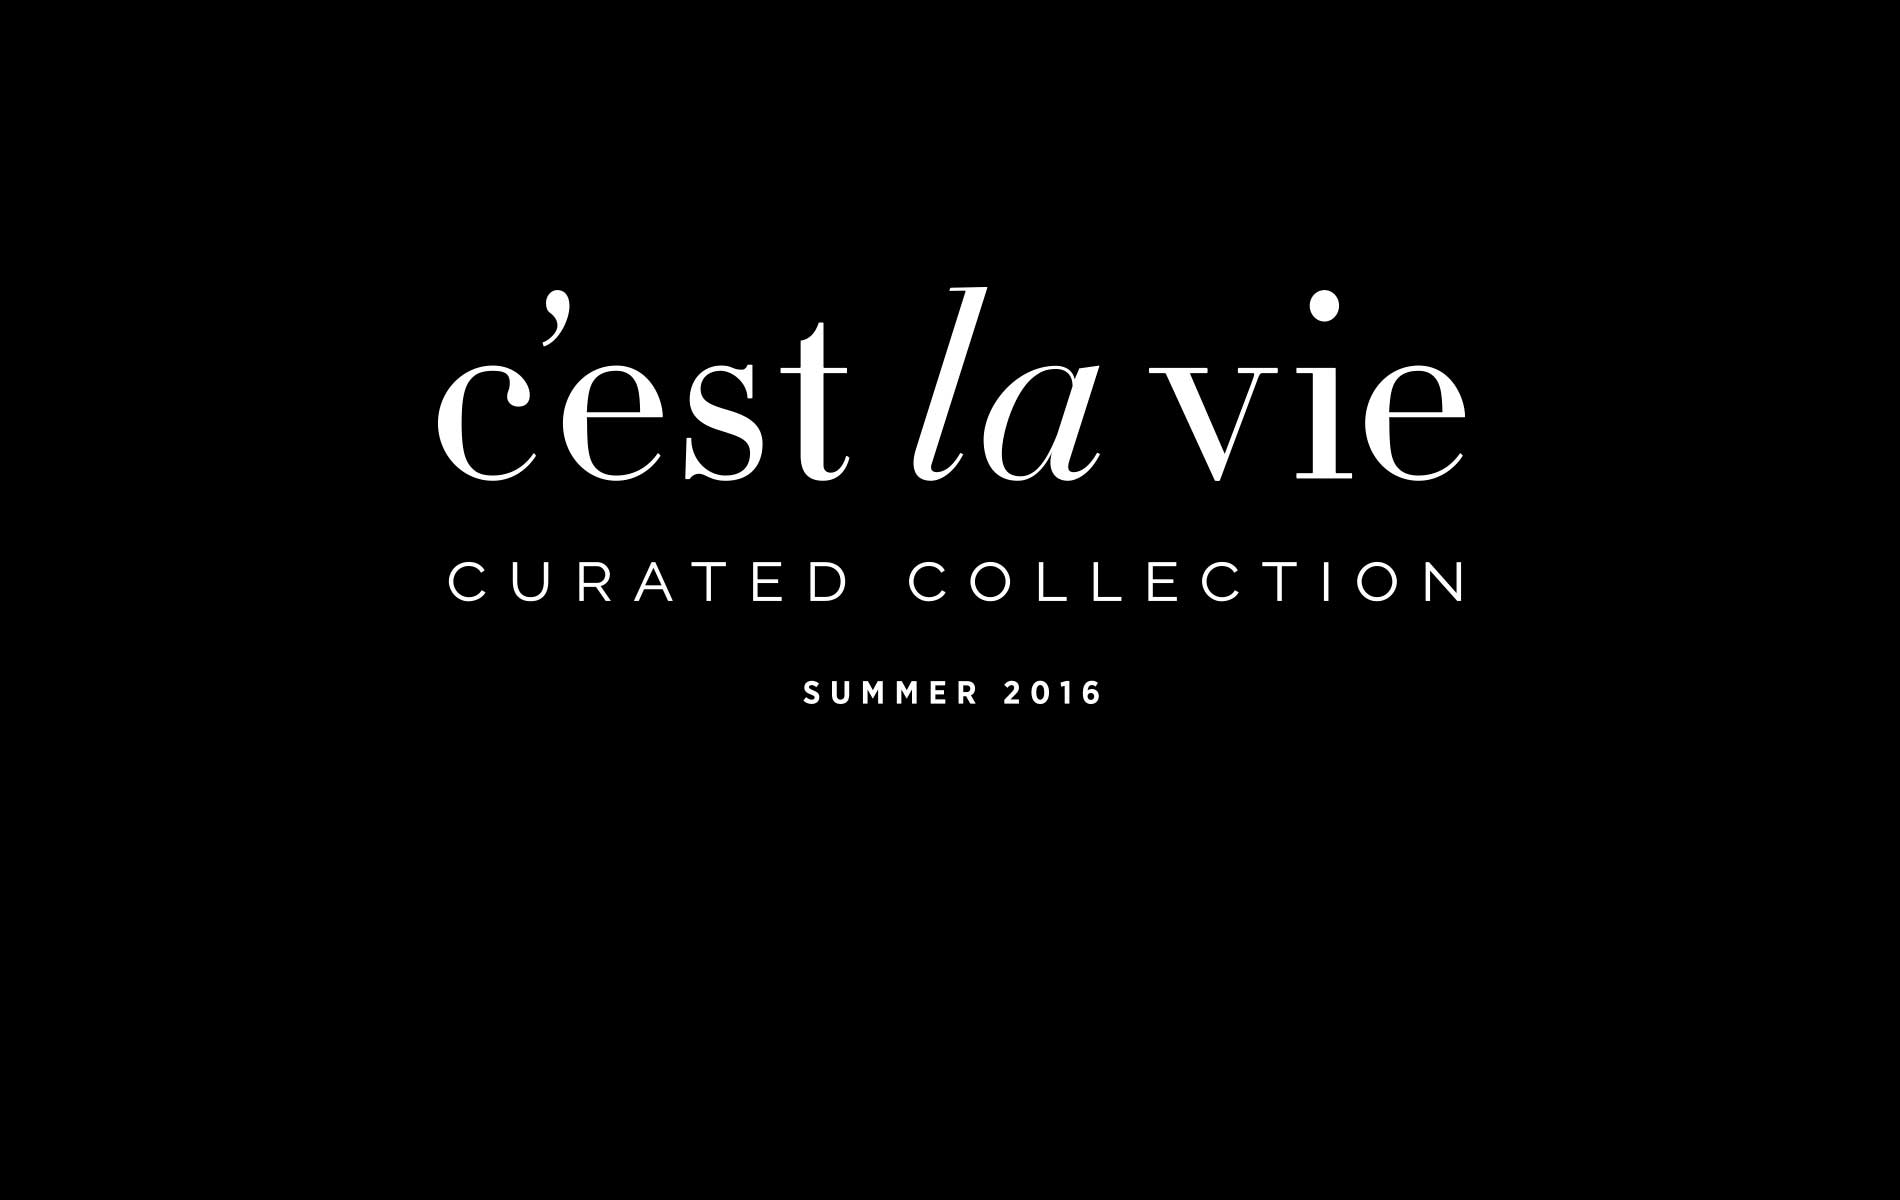 Cest La Vie Curated Collection Summer 2016